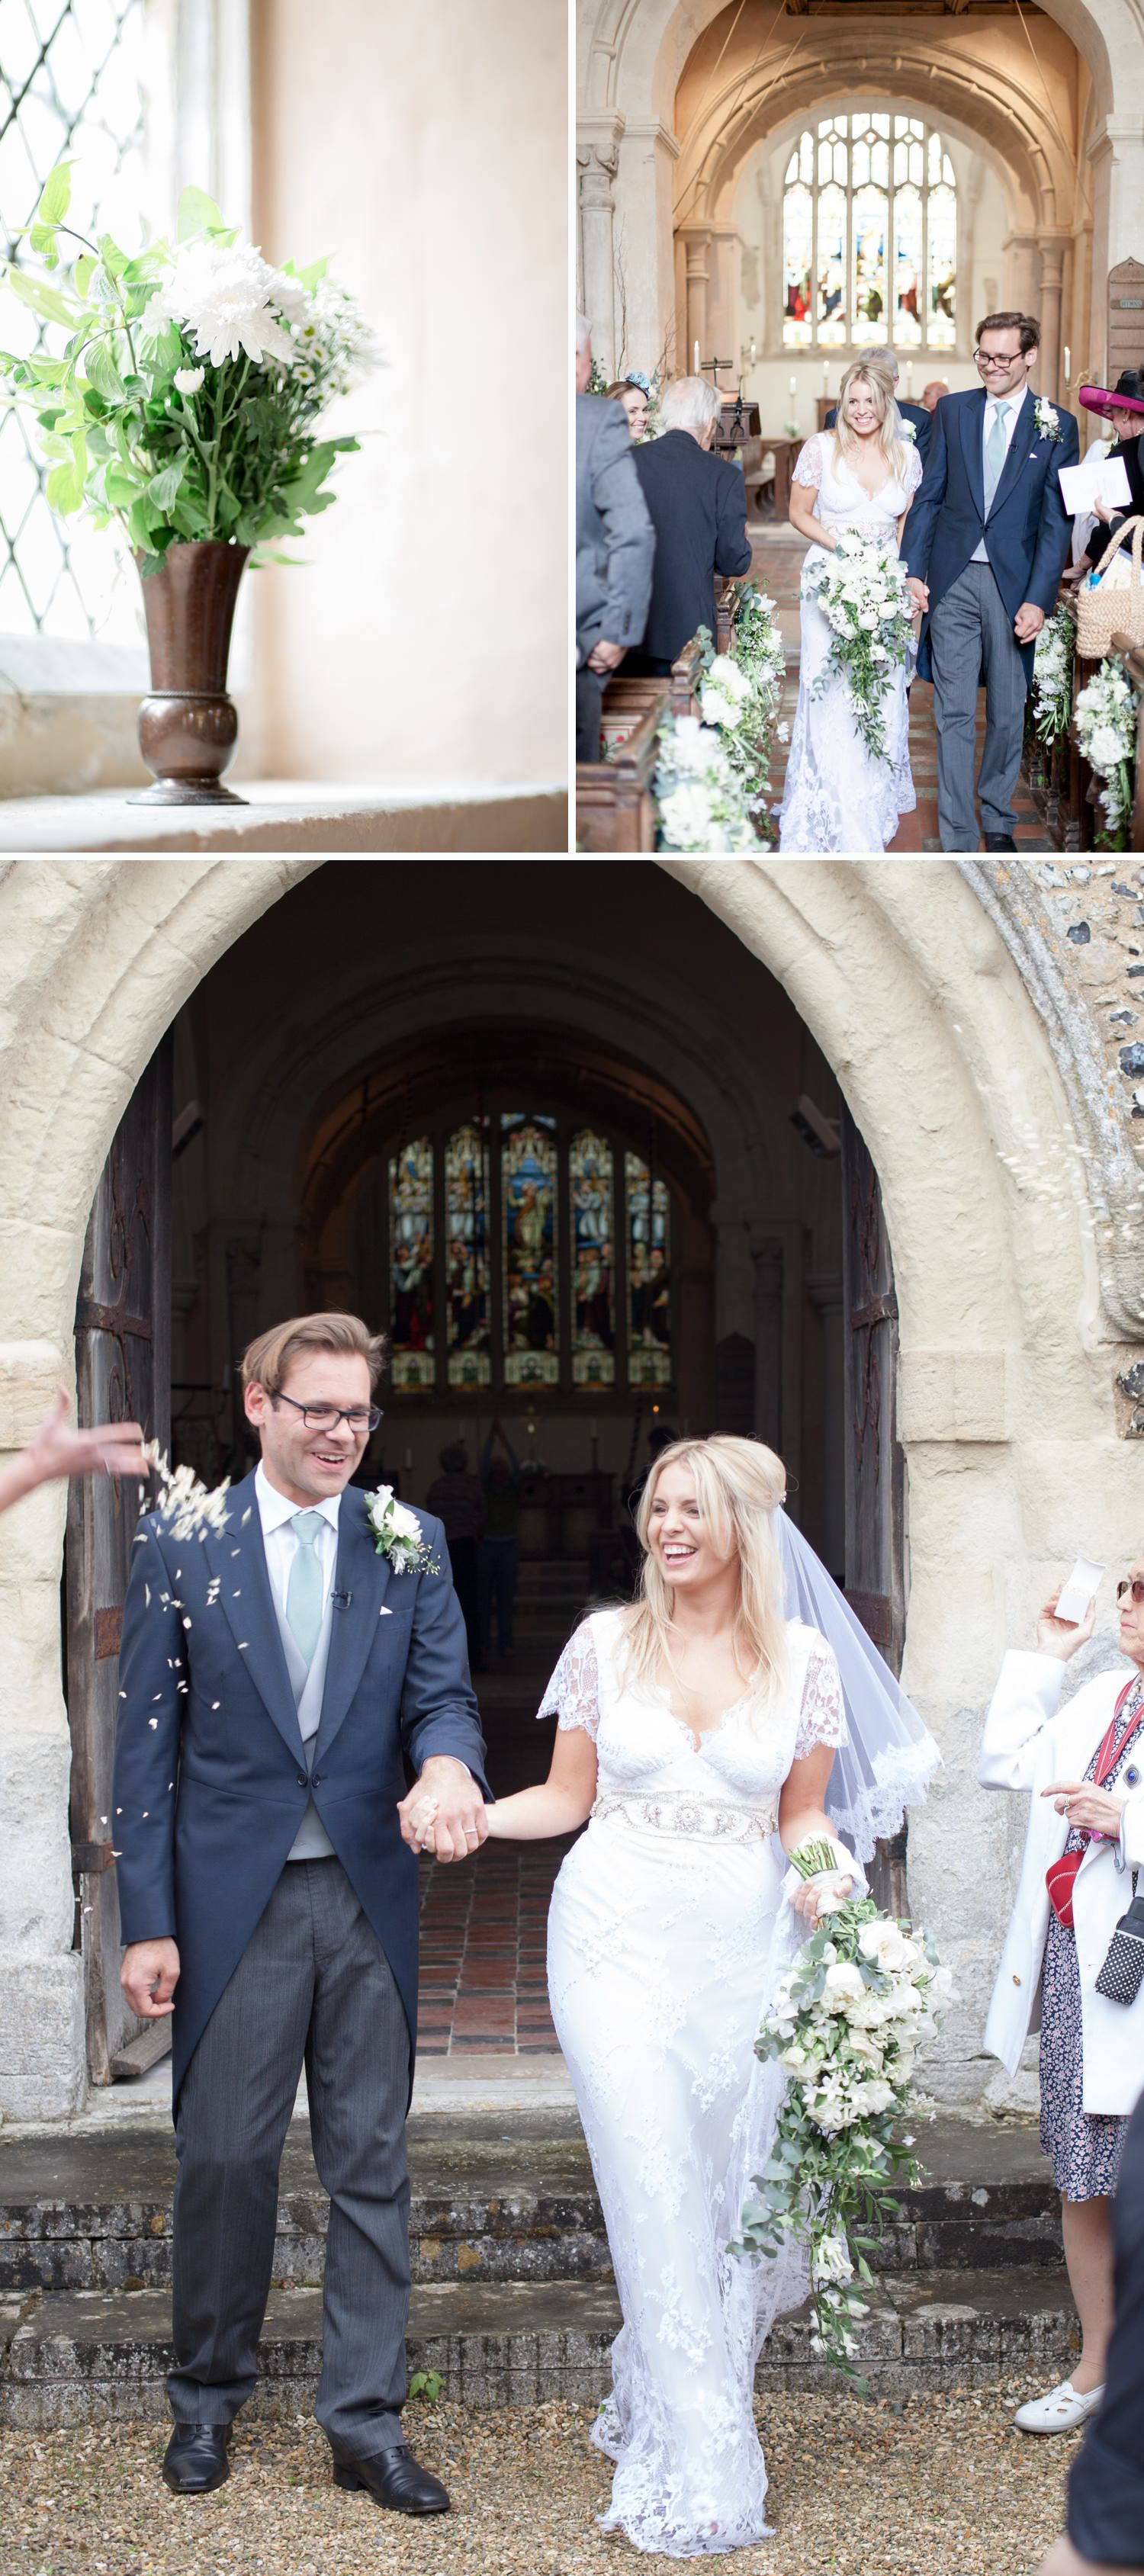 Emily & Jonathan's Cambridgeshire wedding - walking down the aisle after a marriage ceremony